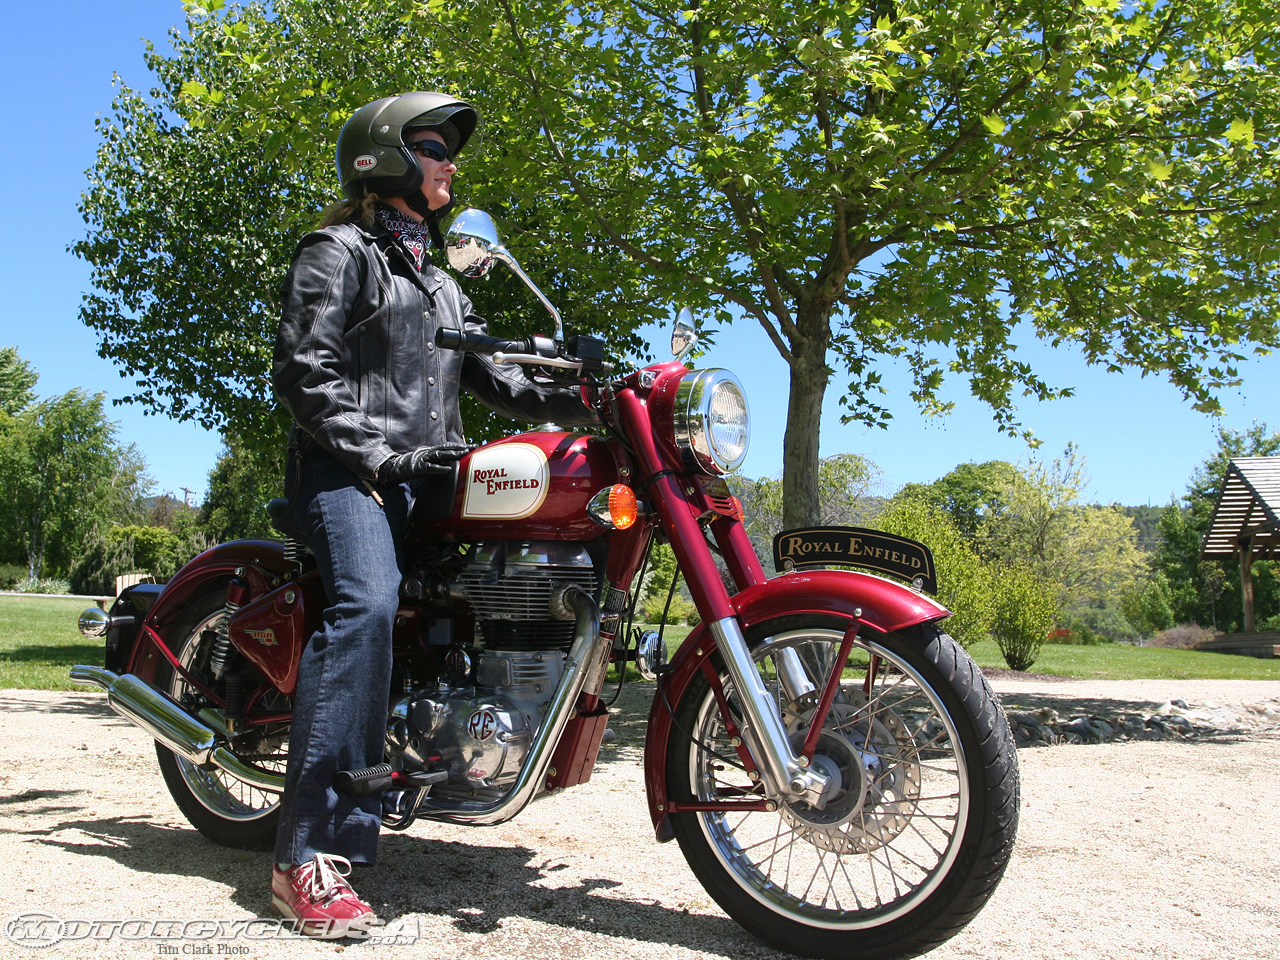 Royal Enfield images #127520